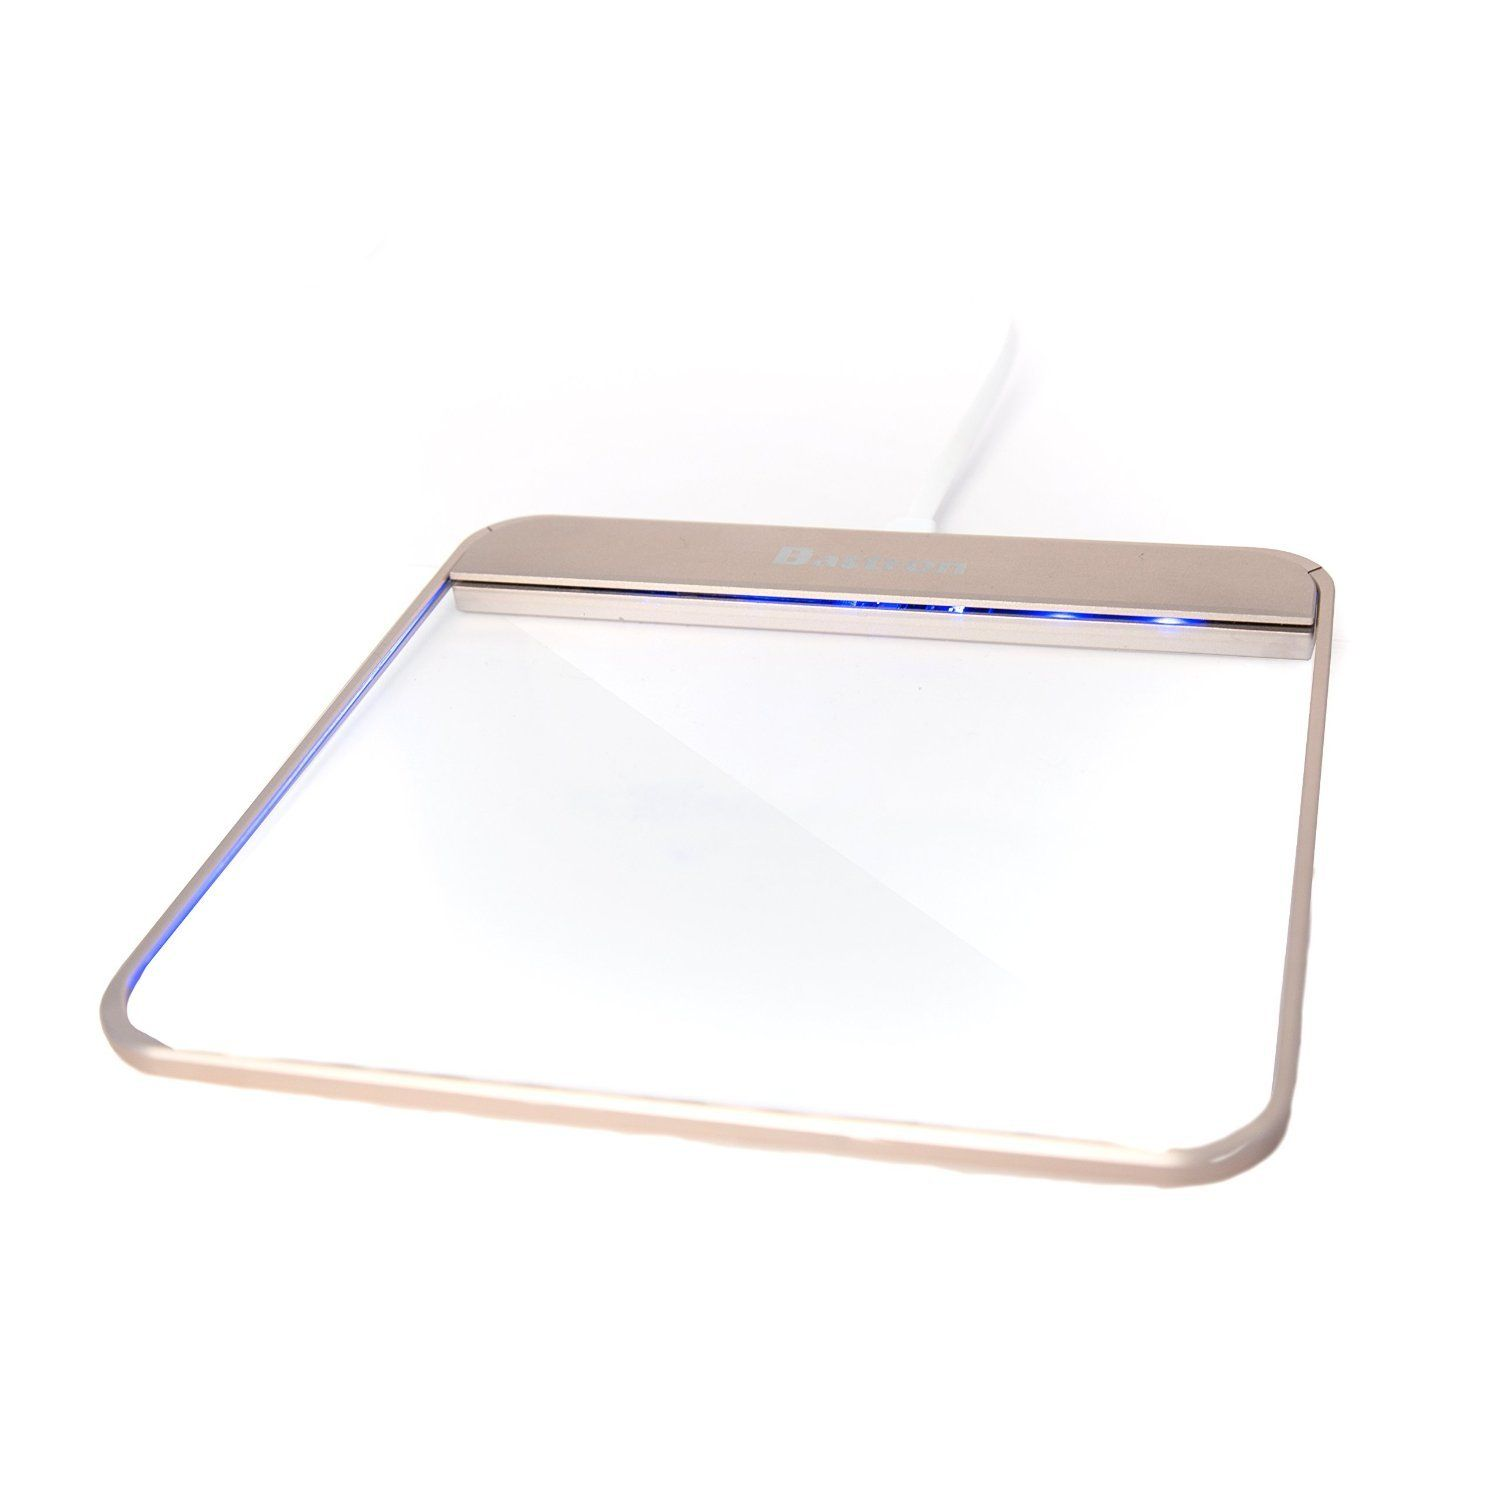 BASTRON B8 WIRED GLASS TOUCHPAD WITH NUMBER PAD TRANSPARENT ...